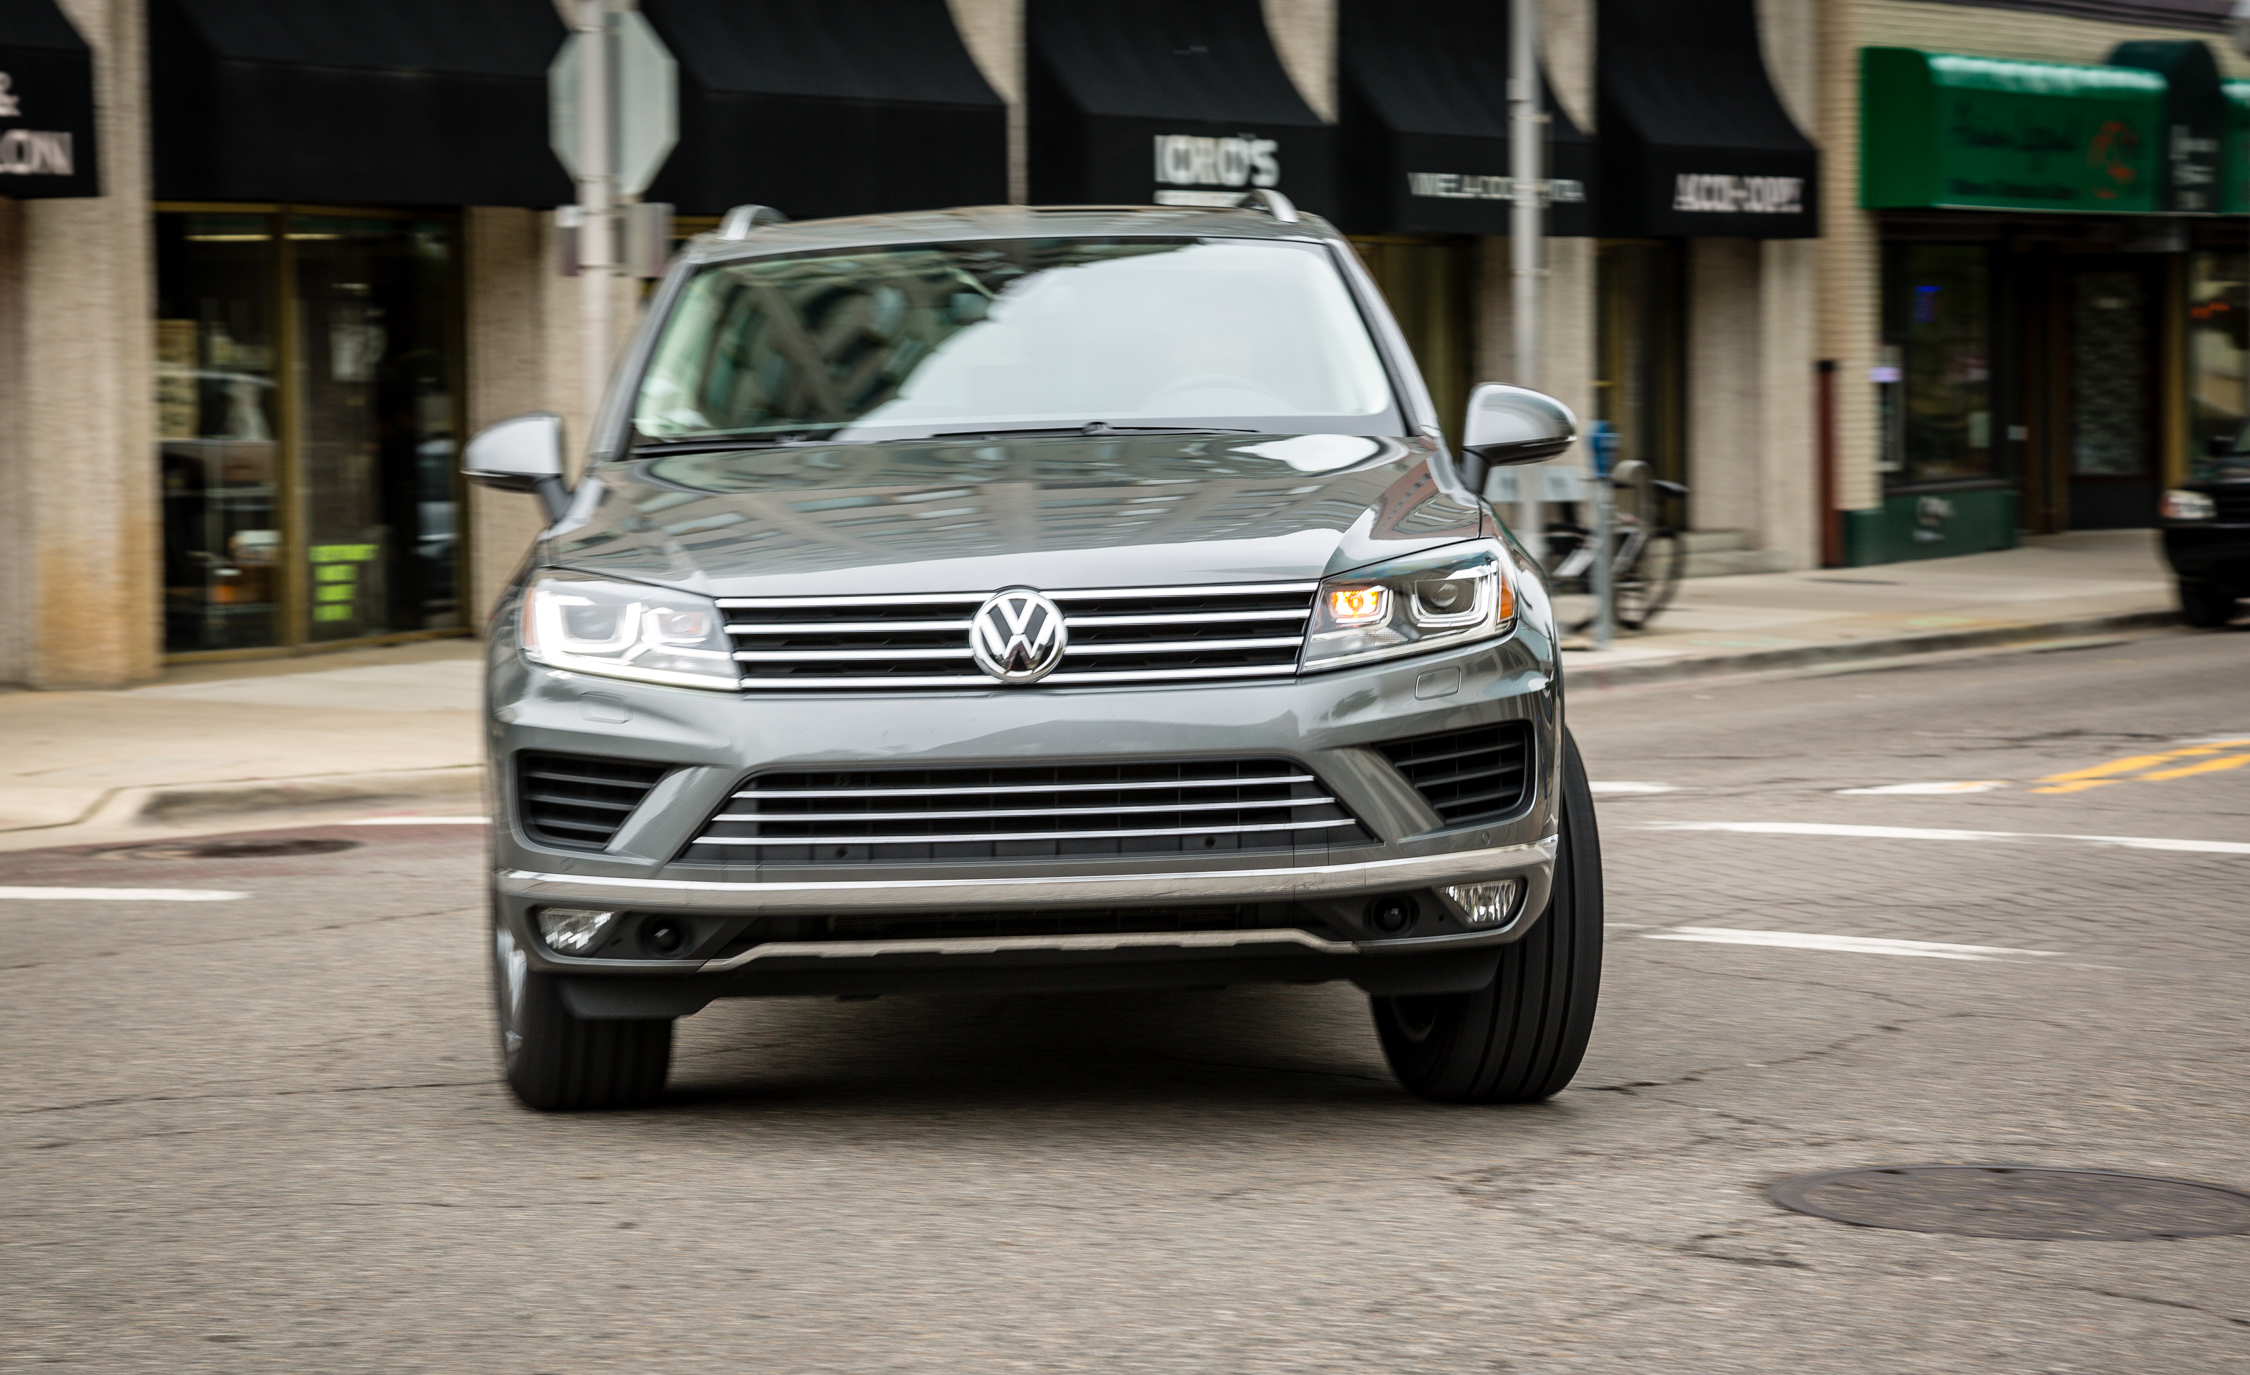 2016 Volkswagen Touareg Test Drive Front View (Photo 13 of 16)